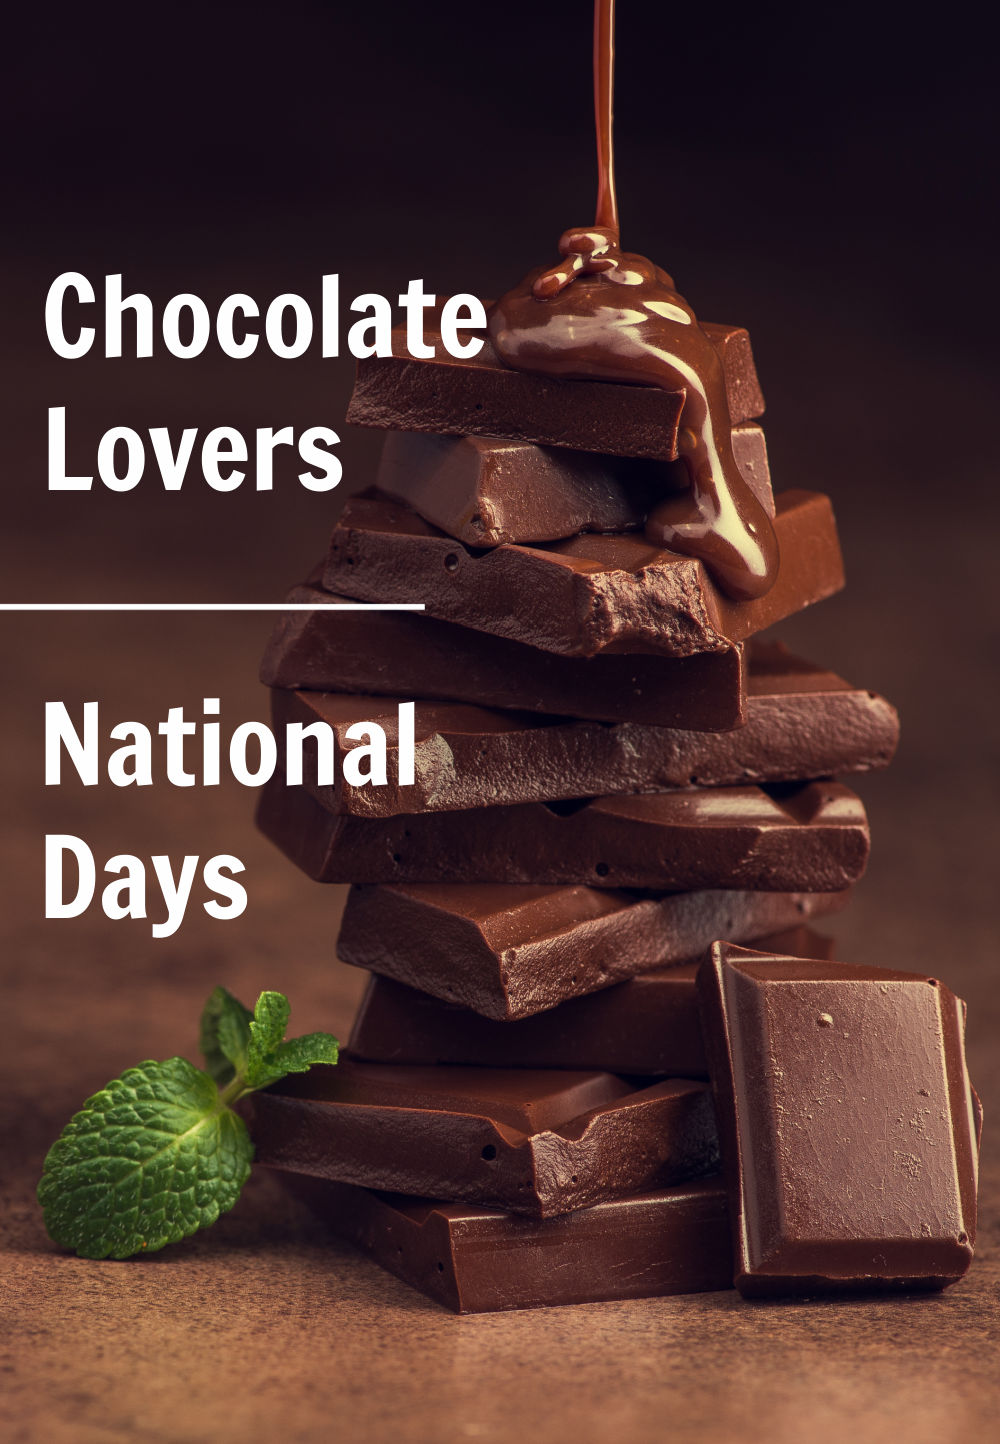 PIle of chocolate and mint sprig with words Chocolate lovers national Days